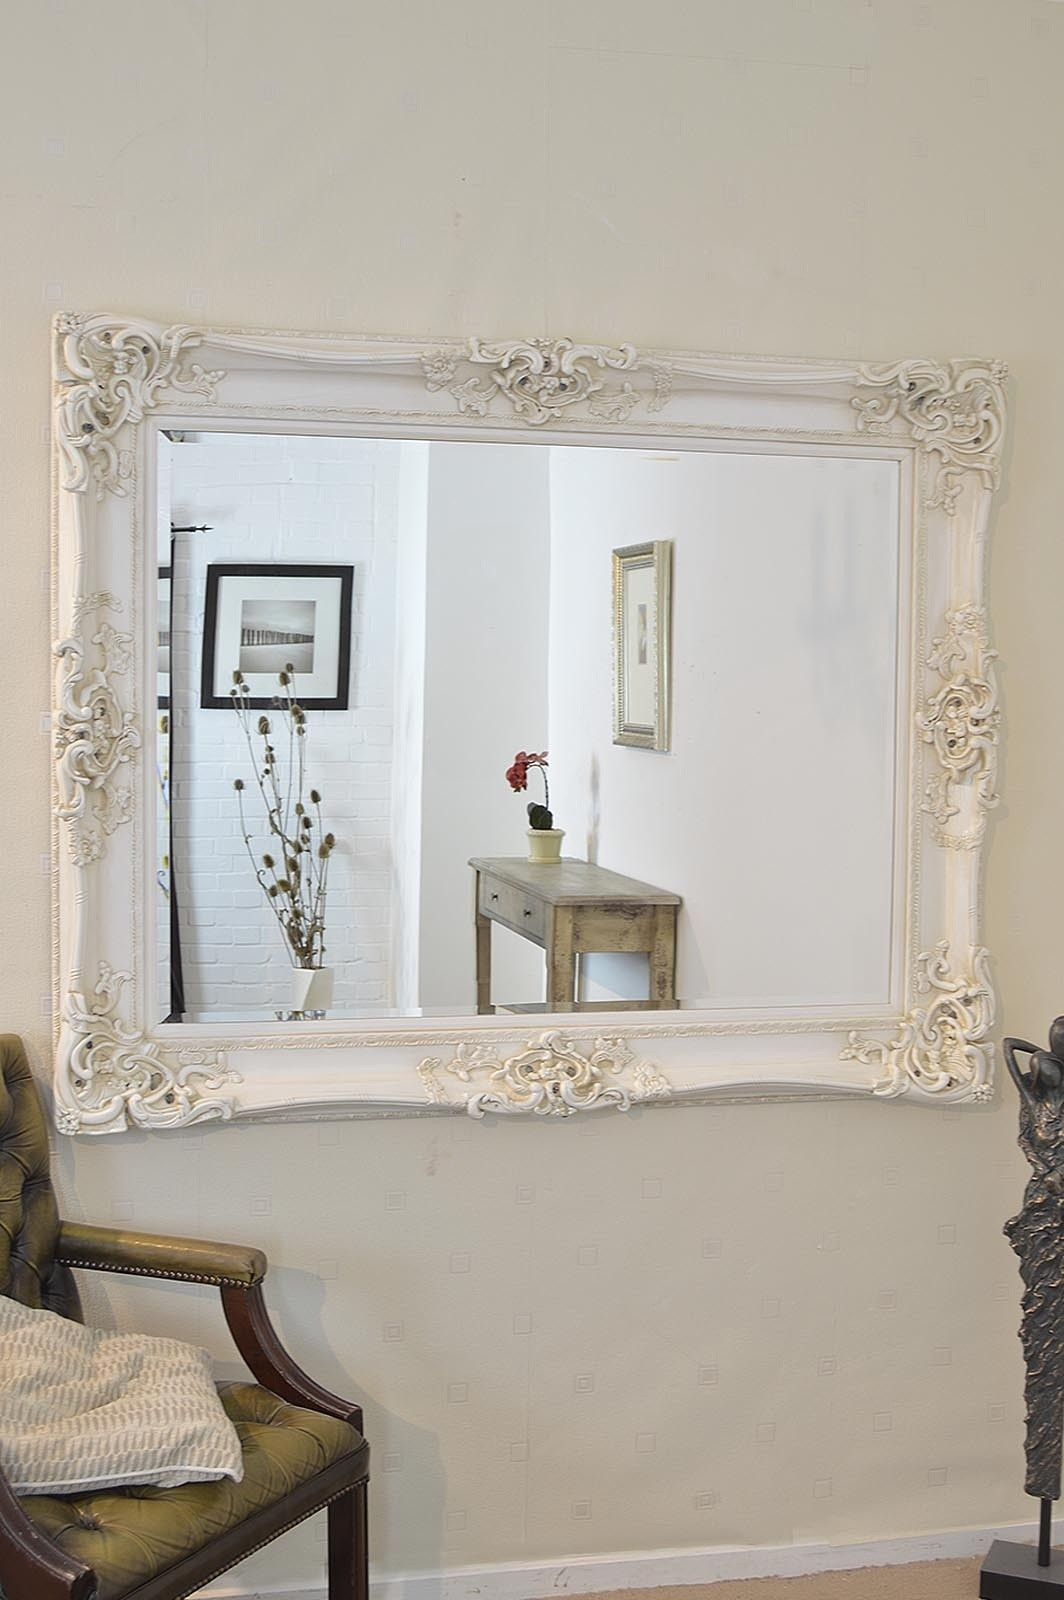 Large Ivory Antique Shab Chic Ornate Big Wall Mirror 5ft X 4ft In Mirrors Shabby Chic (Image 4 of 15)